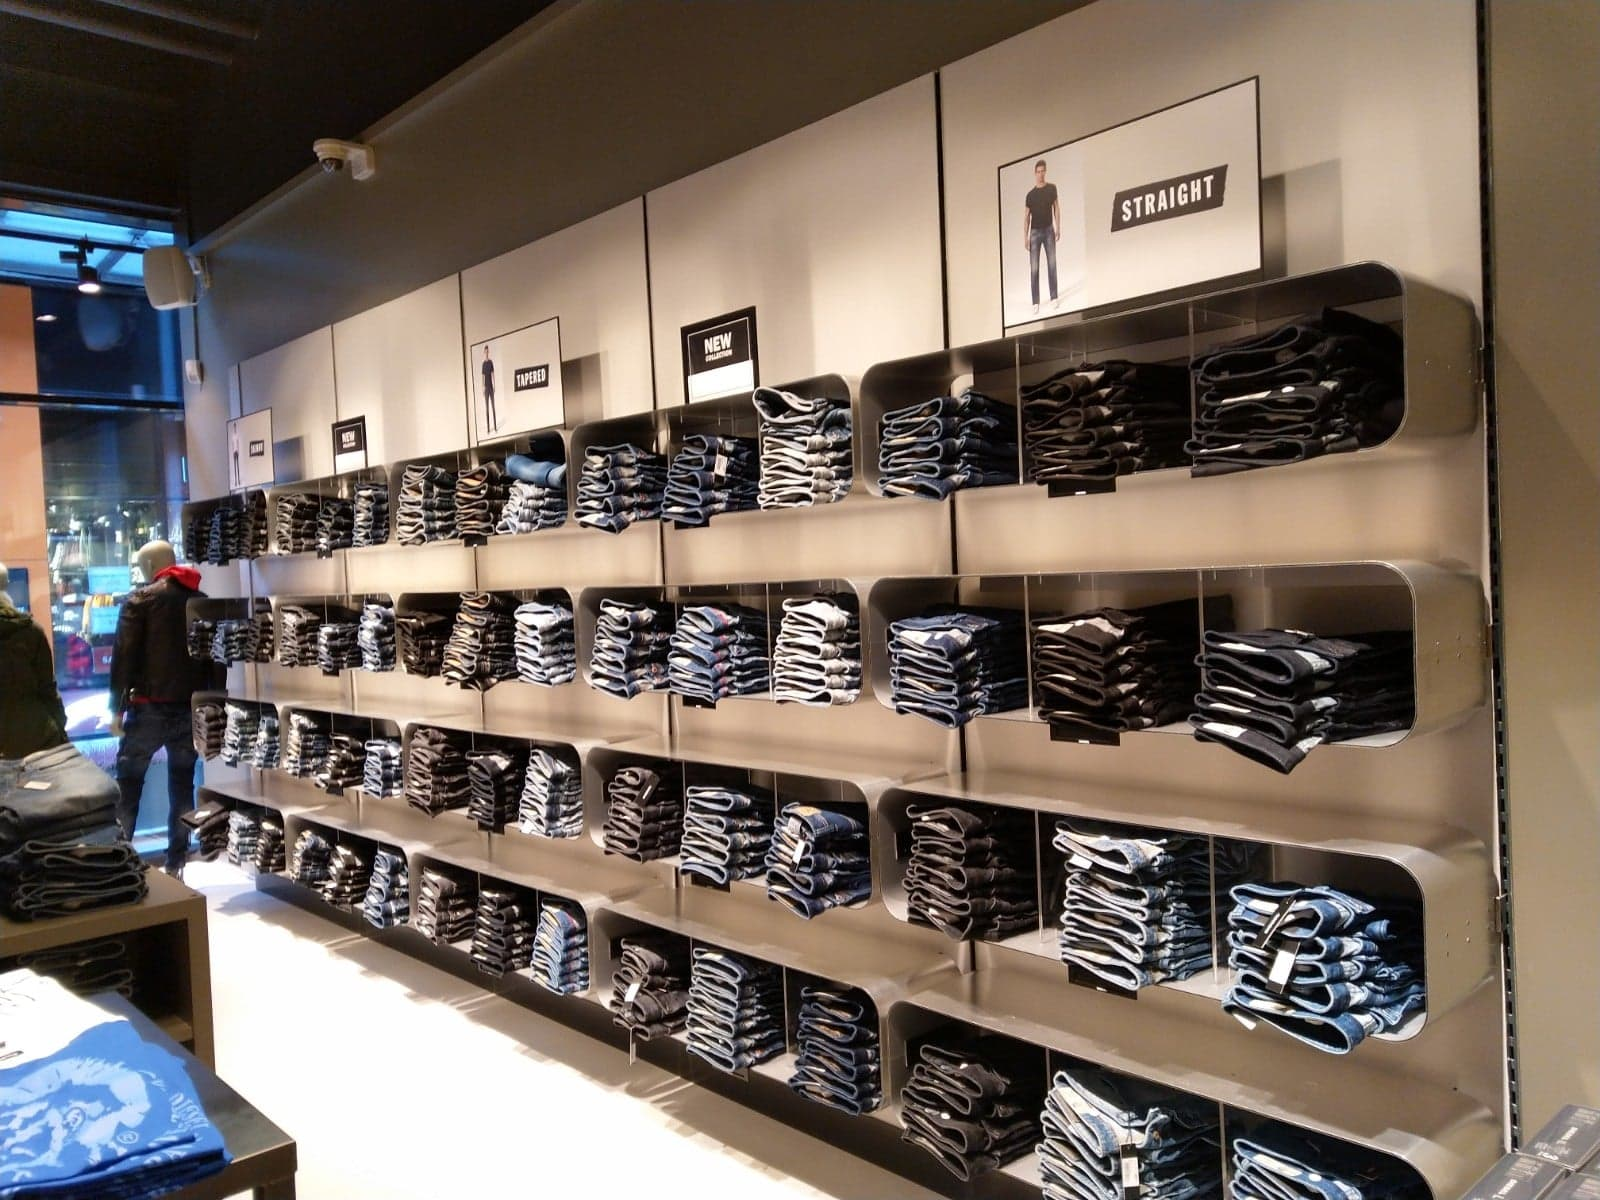 Diesel - Oslo Fashion Outlet